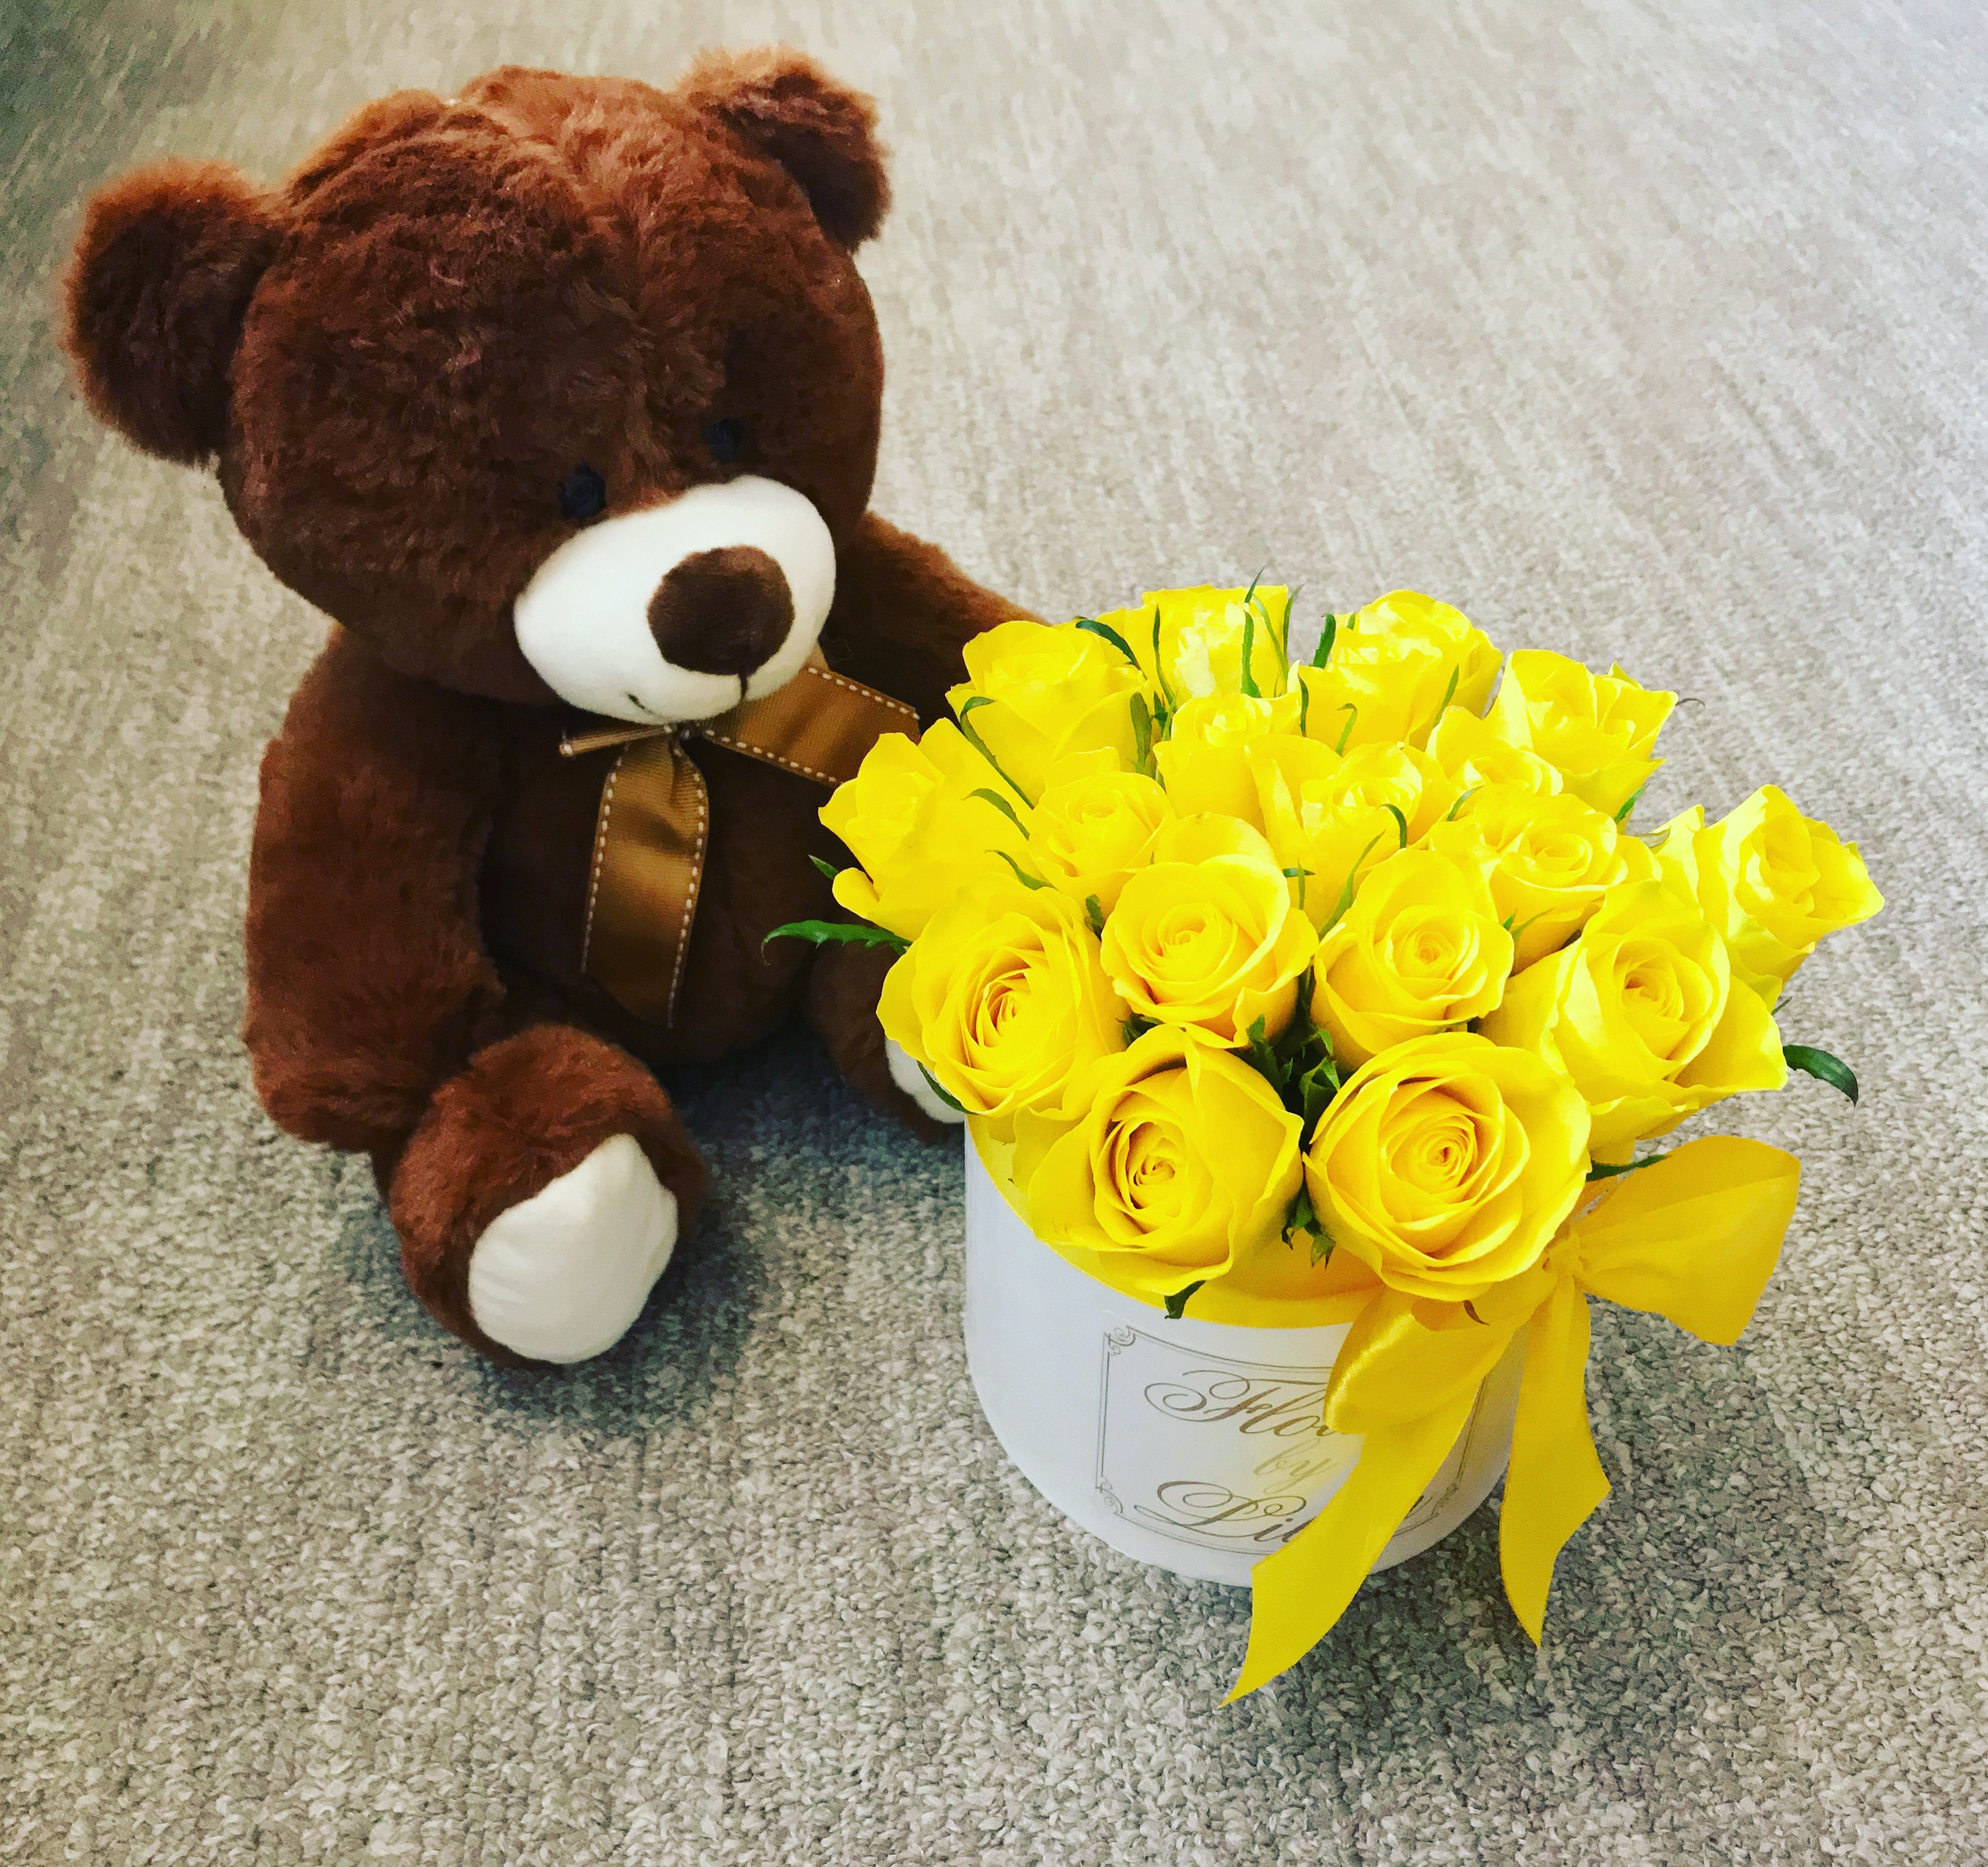 FLOWER BOX YELLOW ROSES WITH BEAR S